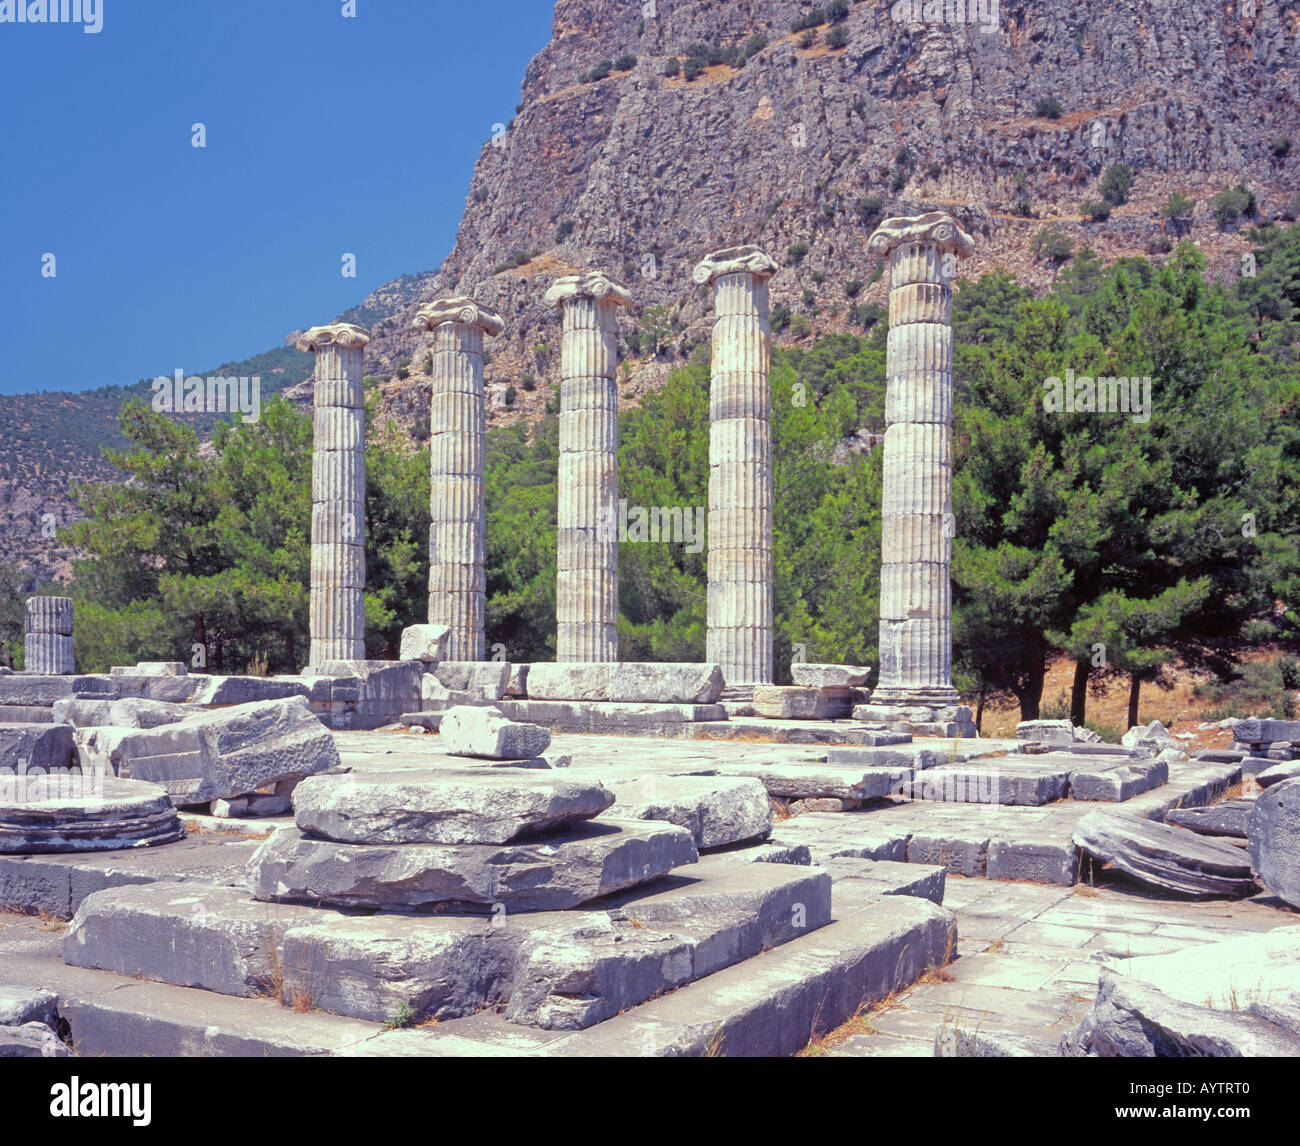 Temple of Aphrodite Ancient Greek Priene Turkey Stock Photo